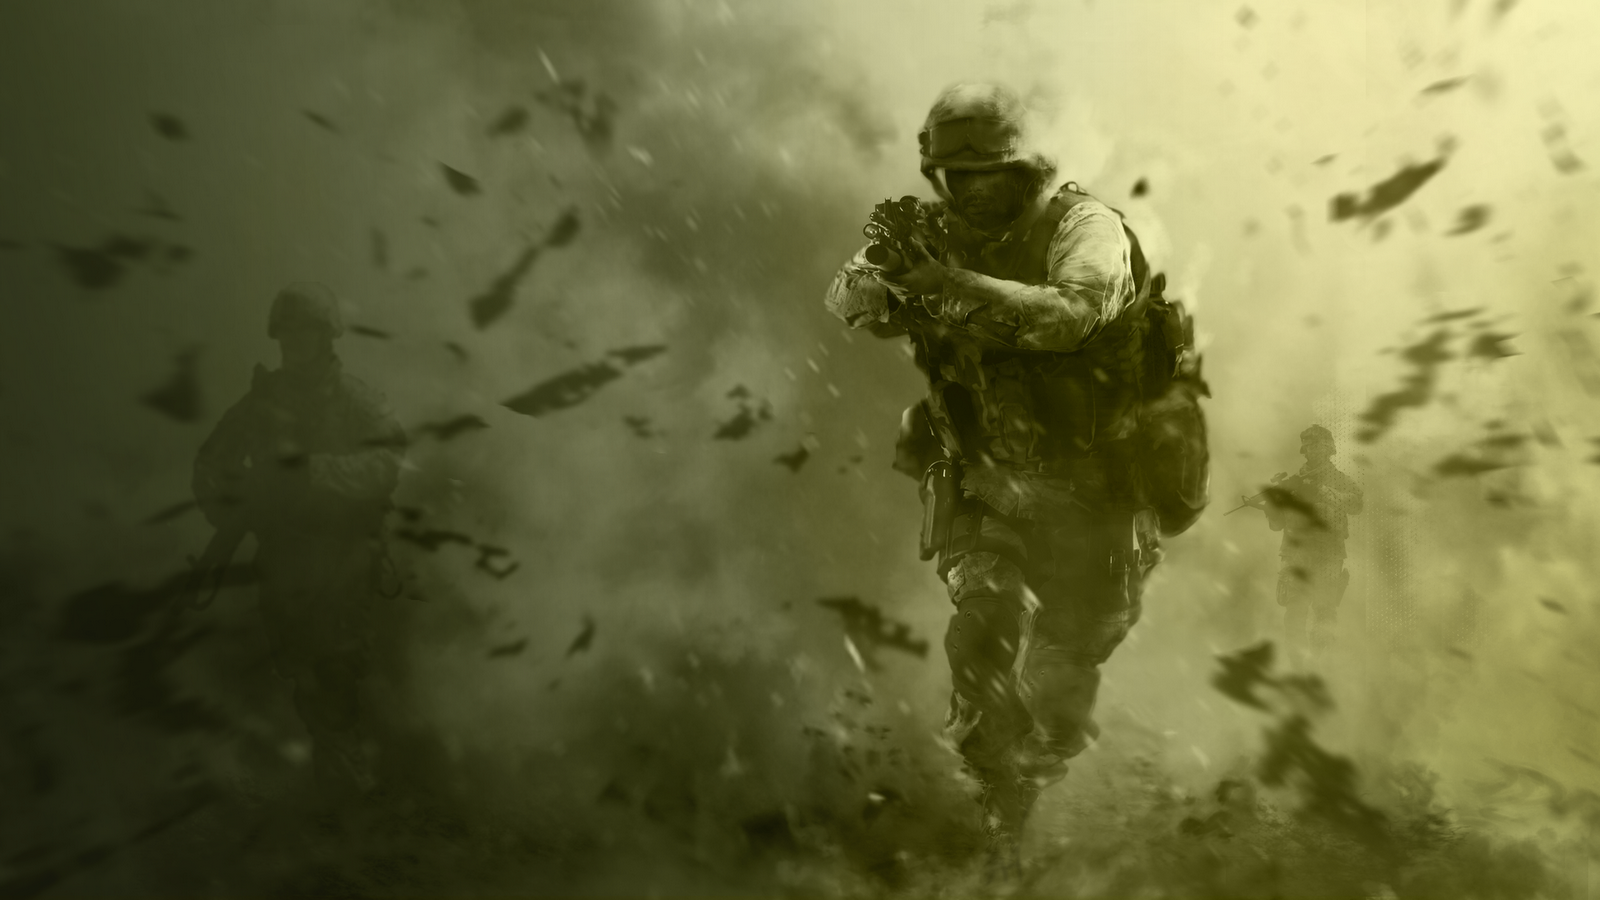 http://2.bp.blogspot.com/-GTp9yiux4uw/Tw6Cdem8jbI/AAAAAAAAAck/cR5LB9nAAN0/s1600/Call-of-Duty-Modern-Warfare-Wallpaper-HD-1080p.png